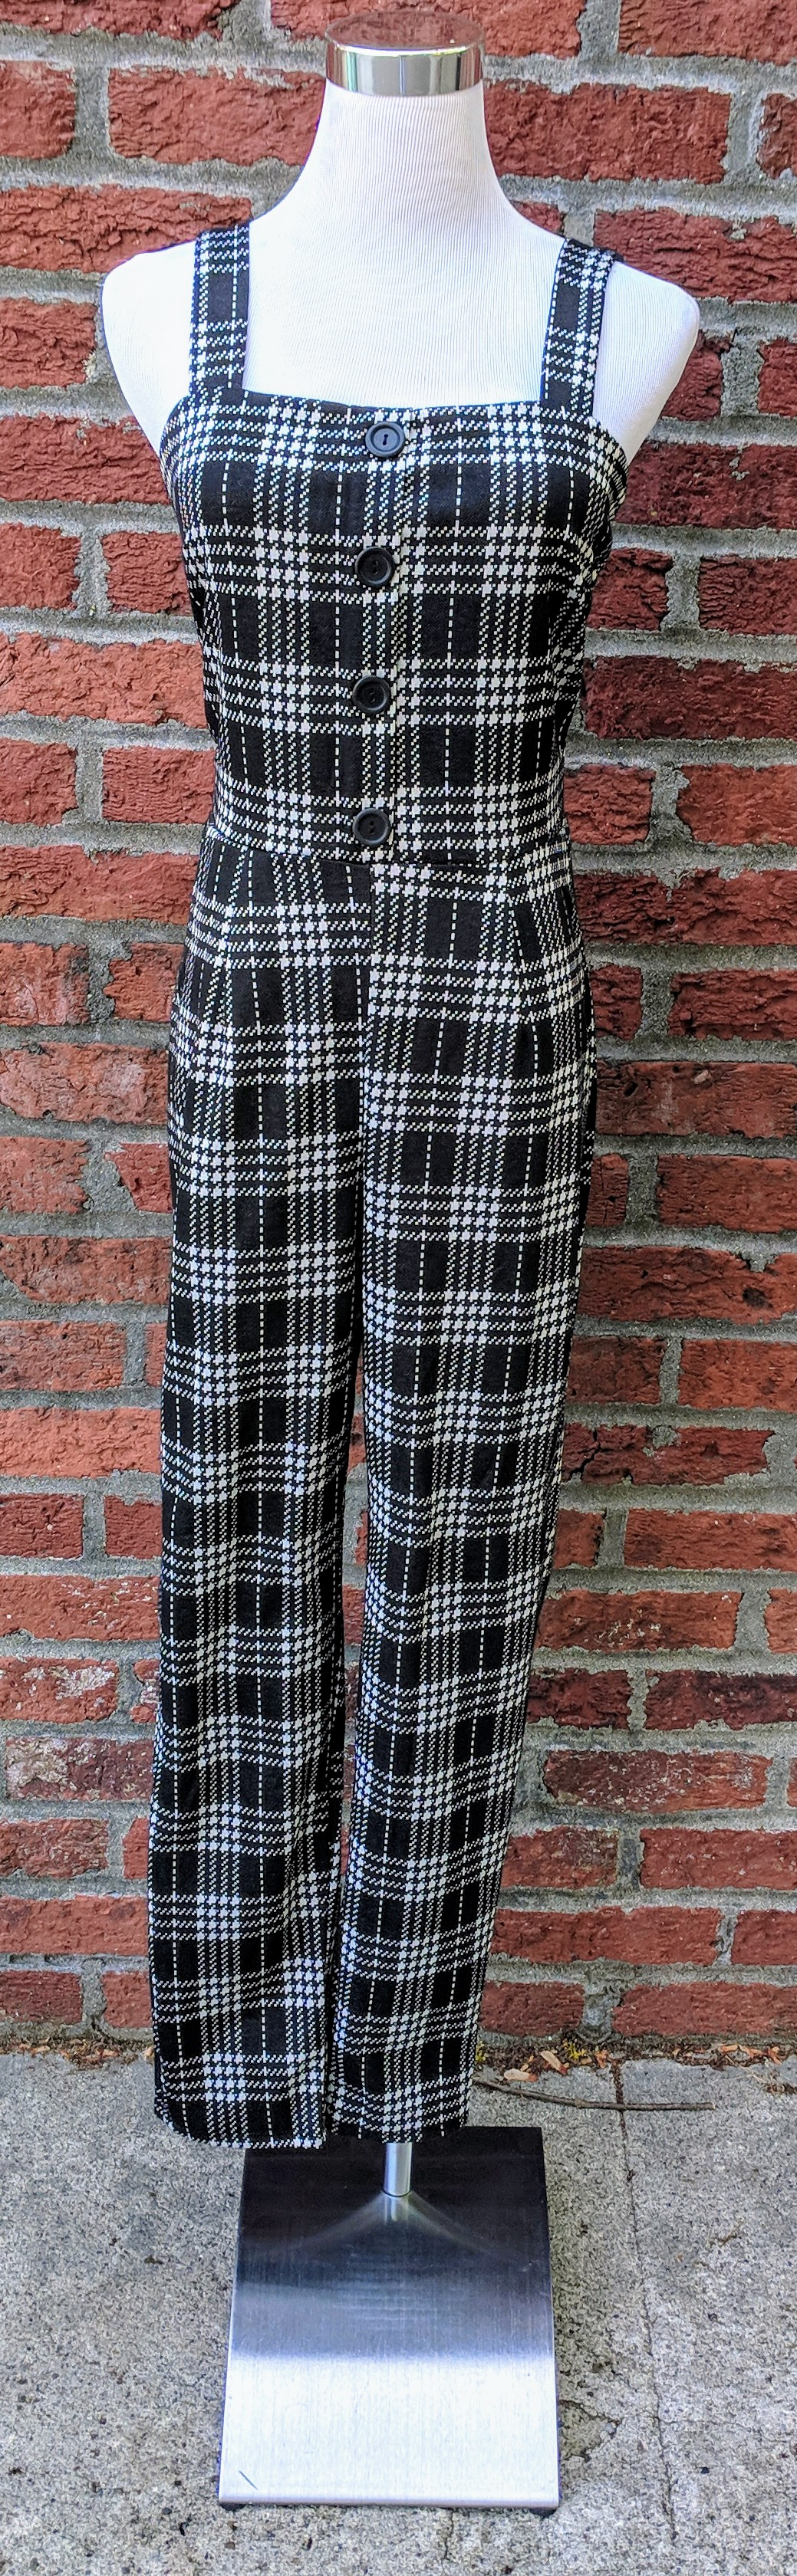 Black and white plaid jumpsuit with button detail on front.